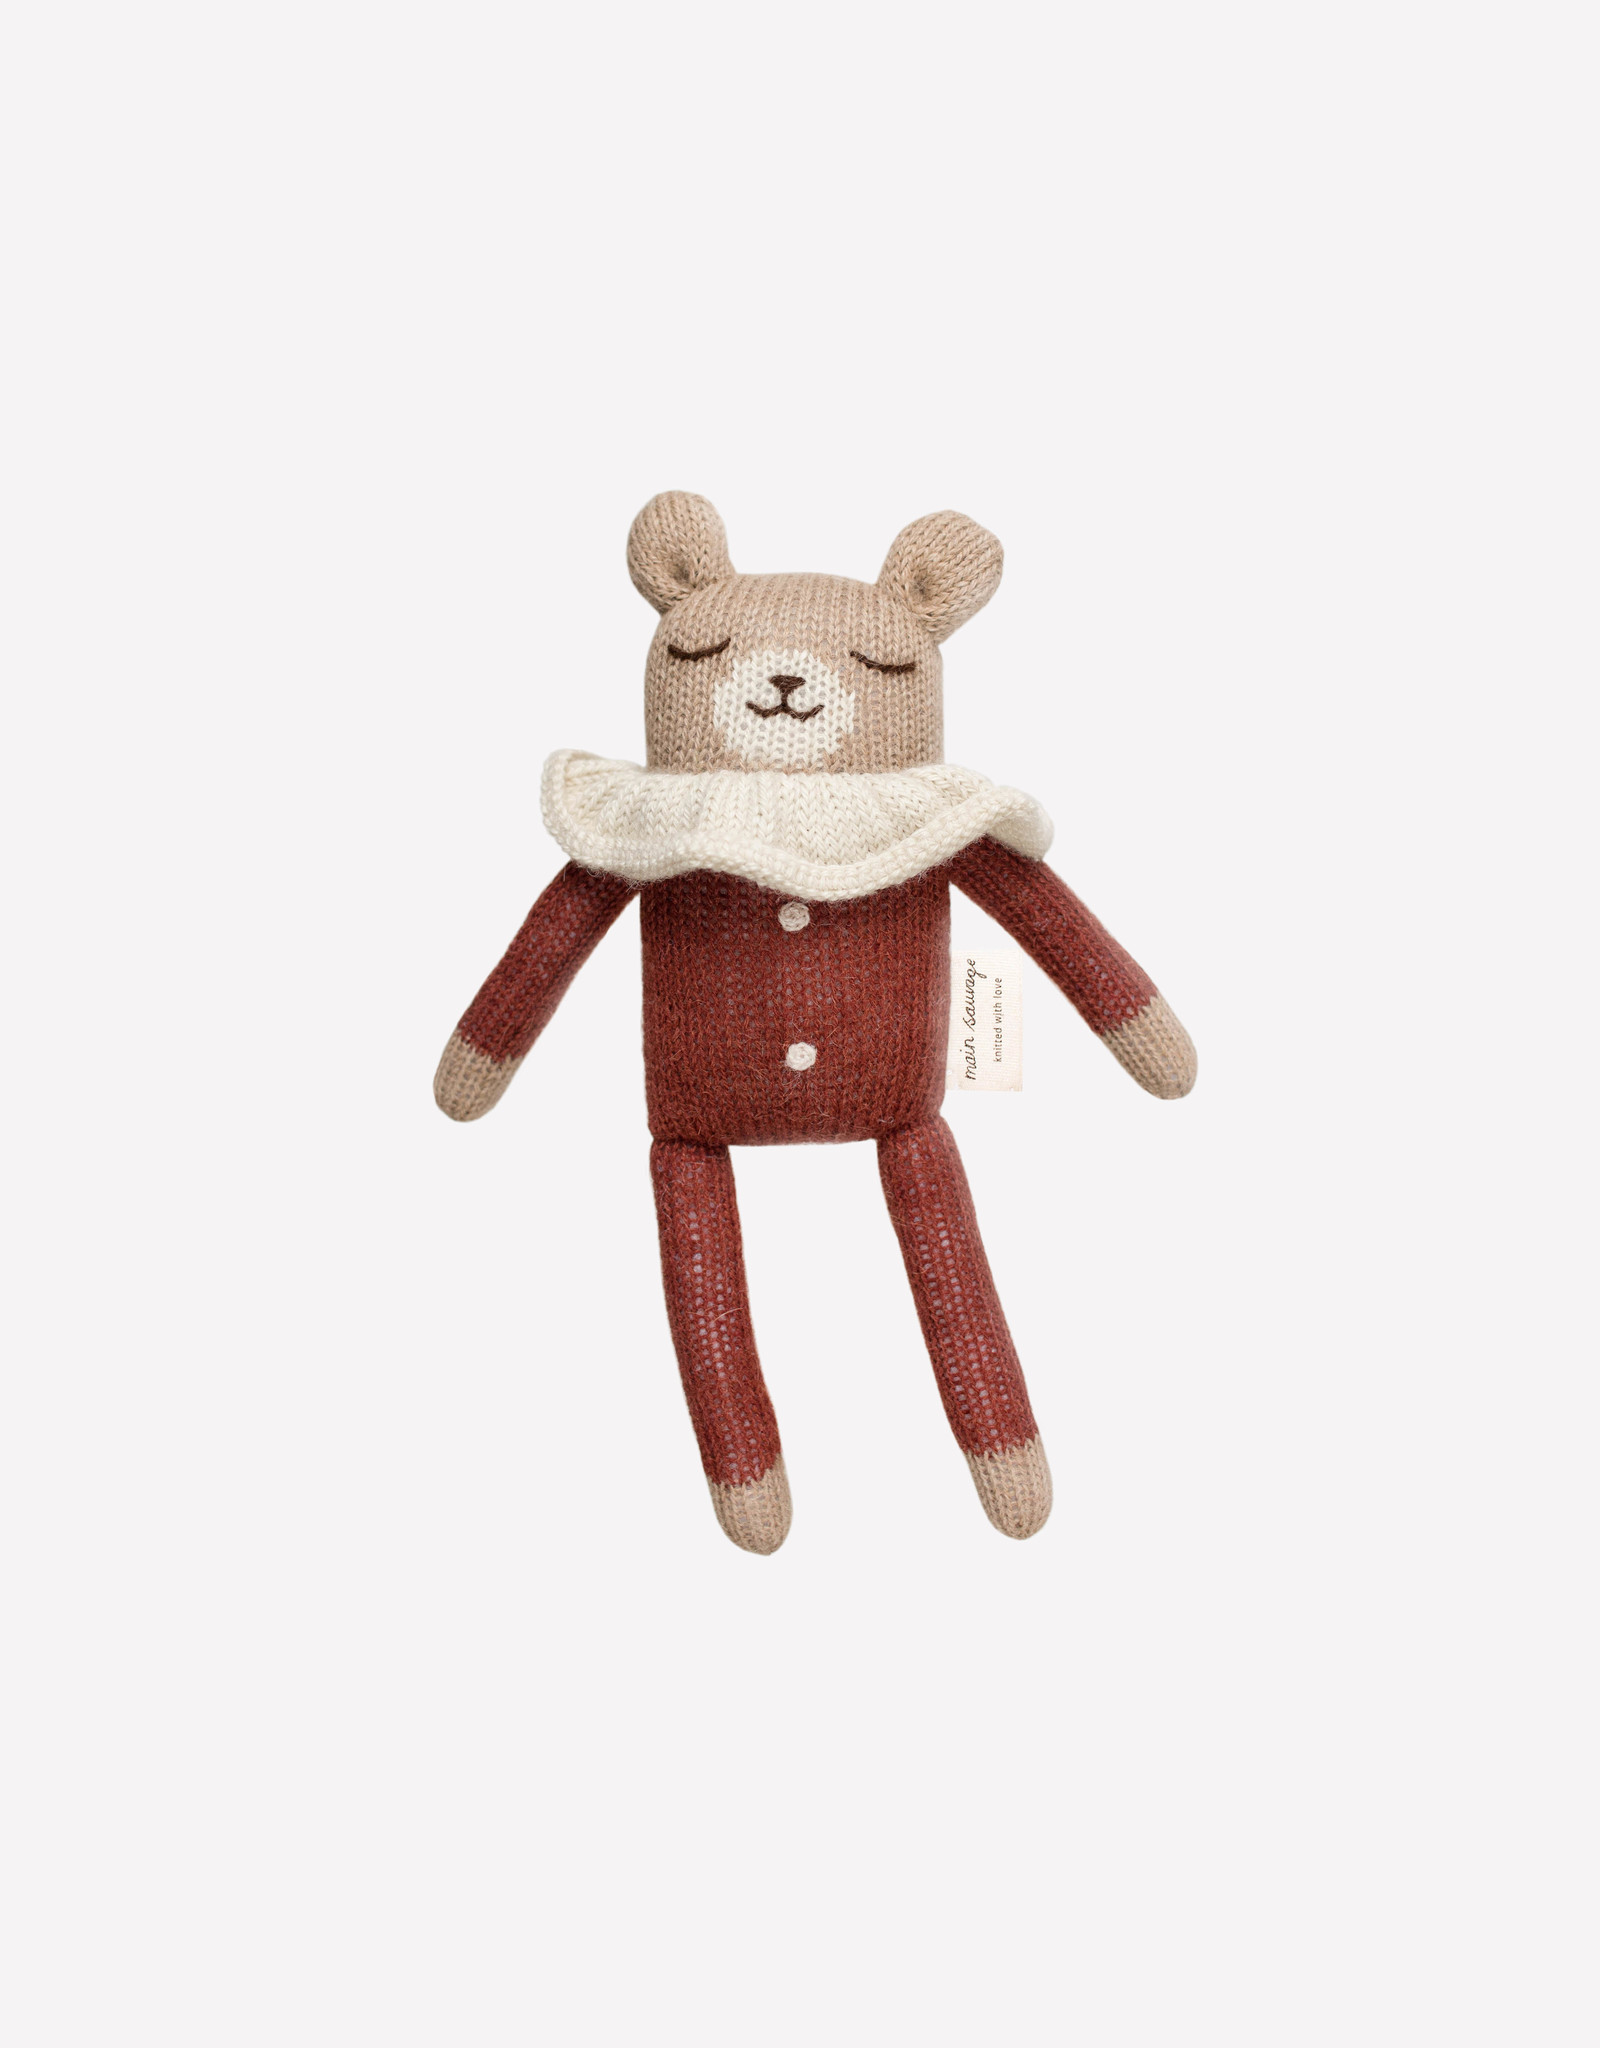 Main Sauvage Teddy Knit Toy